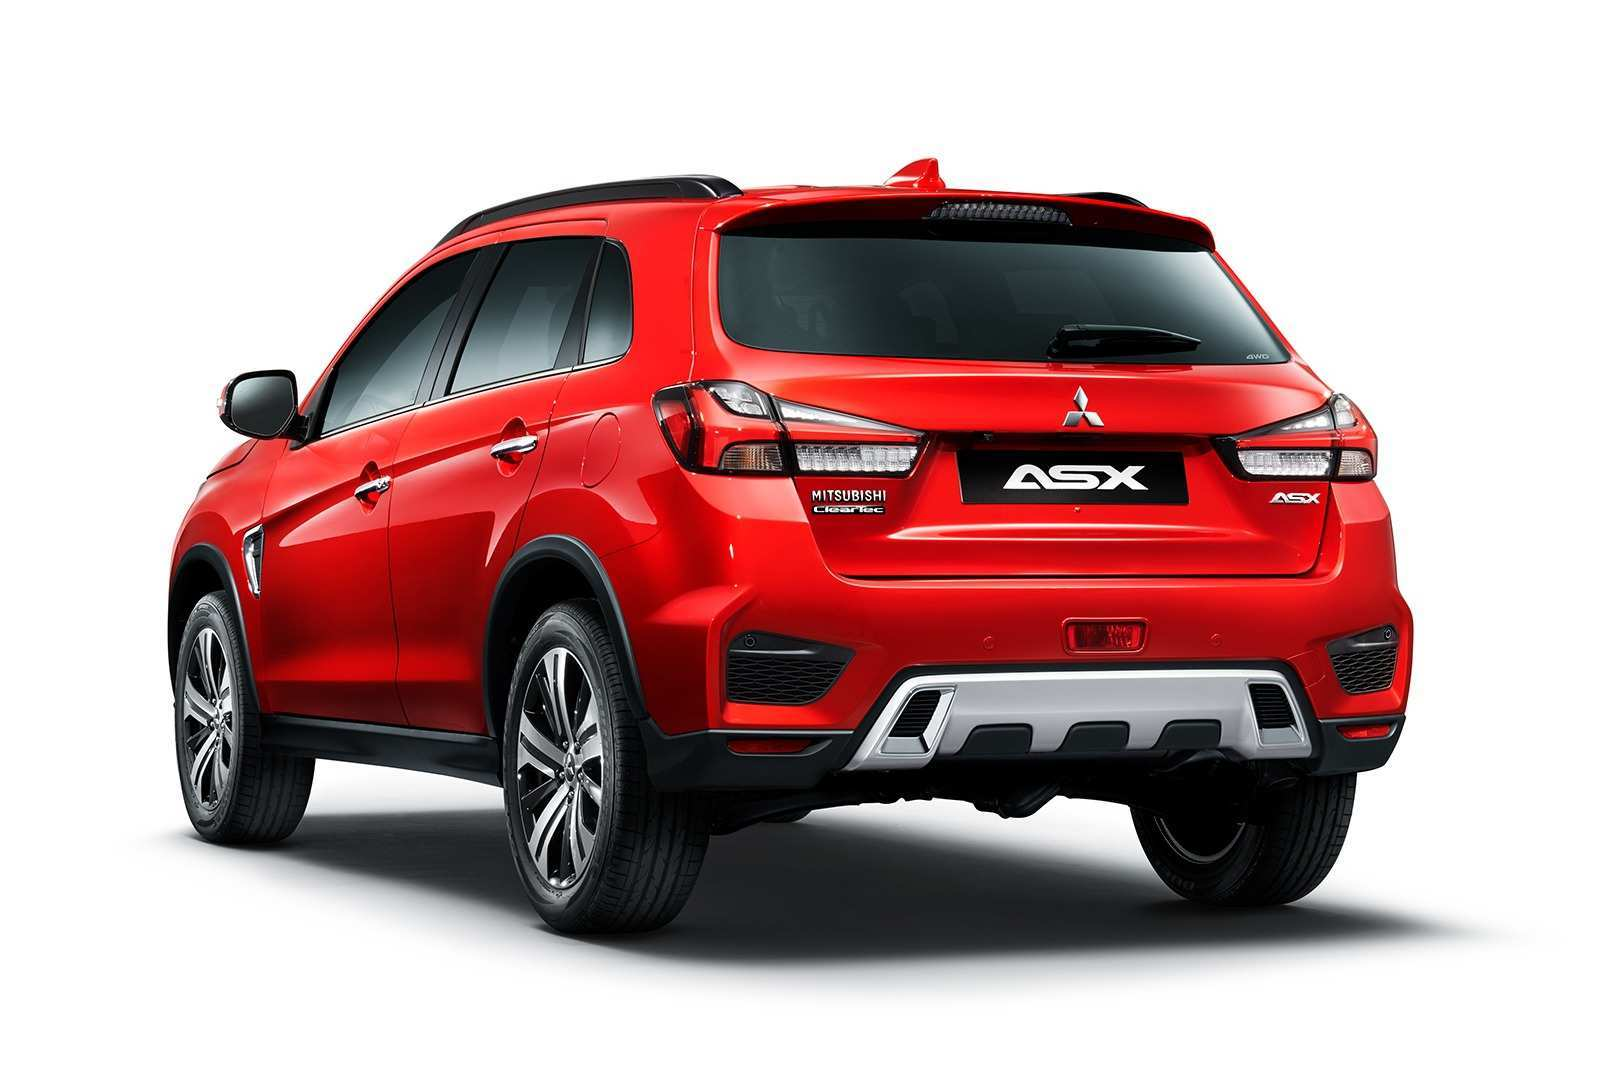 16 Best Review Mitsubishi Outlander 2020 Model Release Date with Mitsubishi Outlander 2020 Model